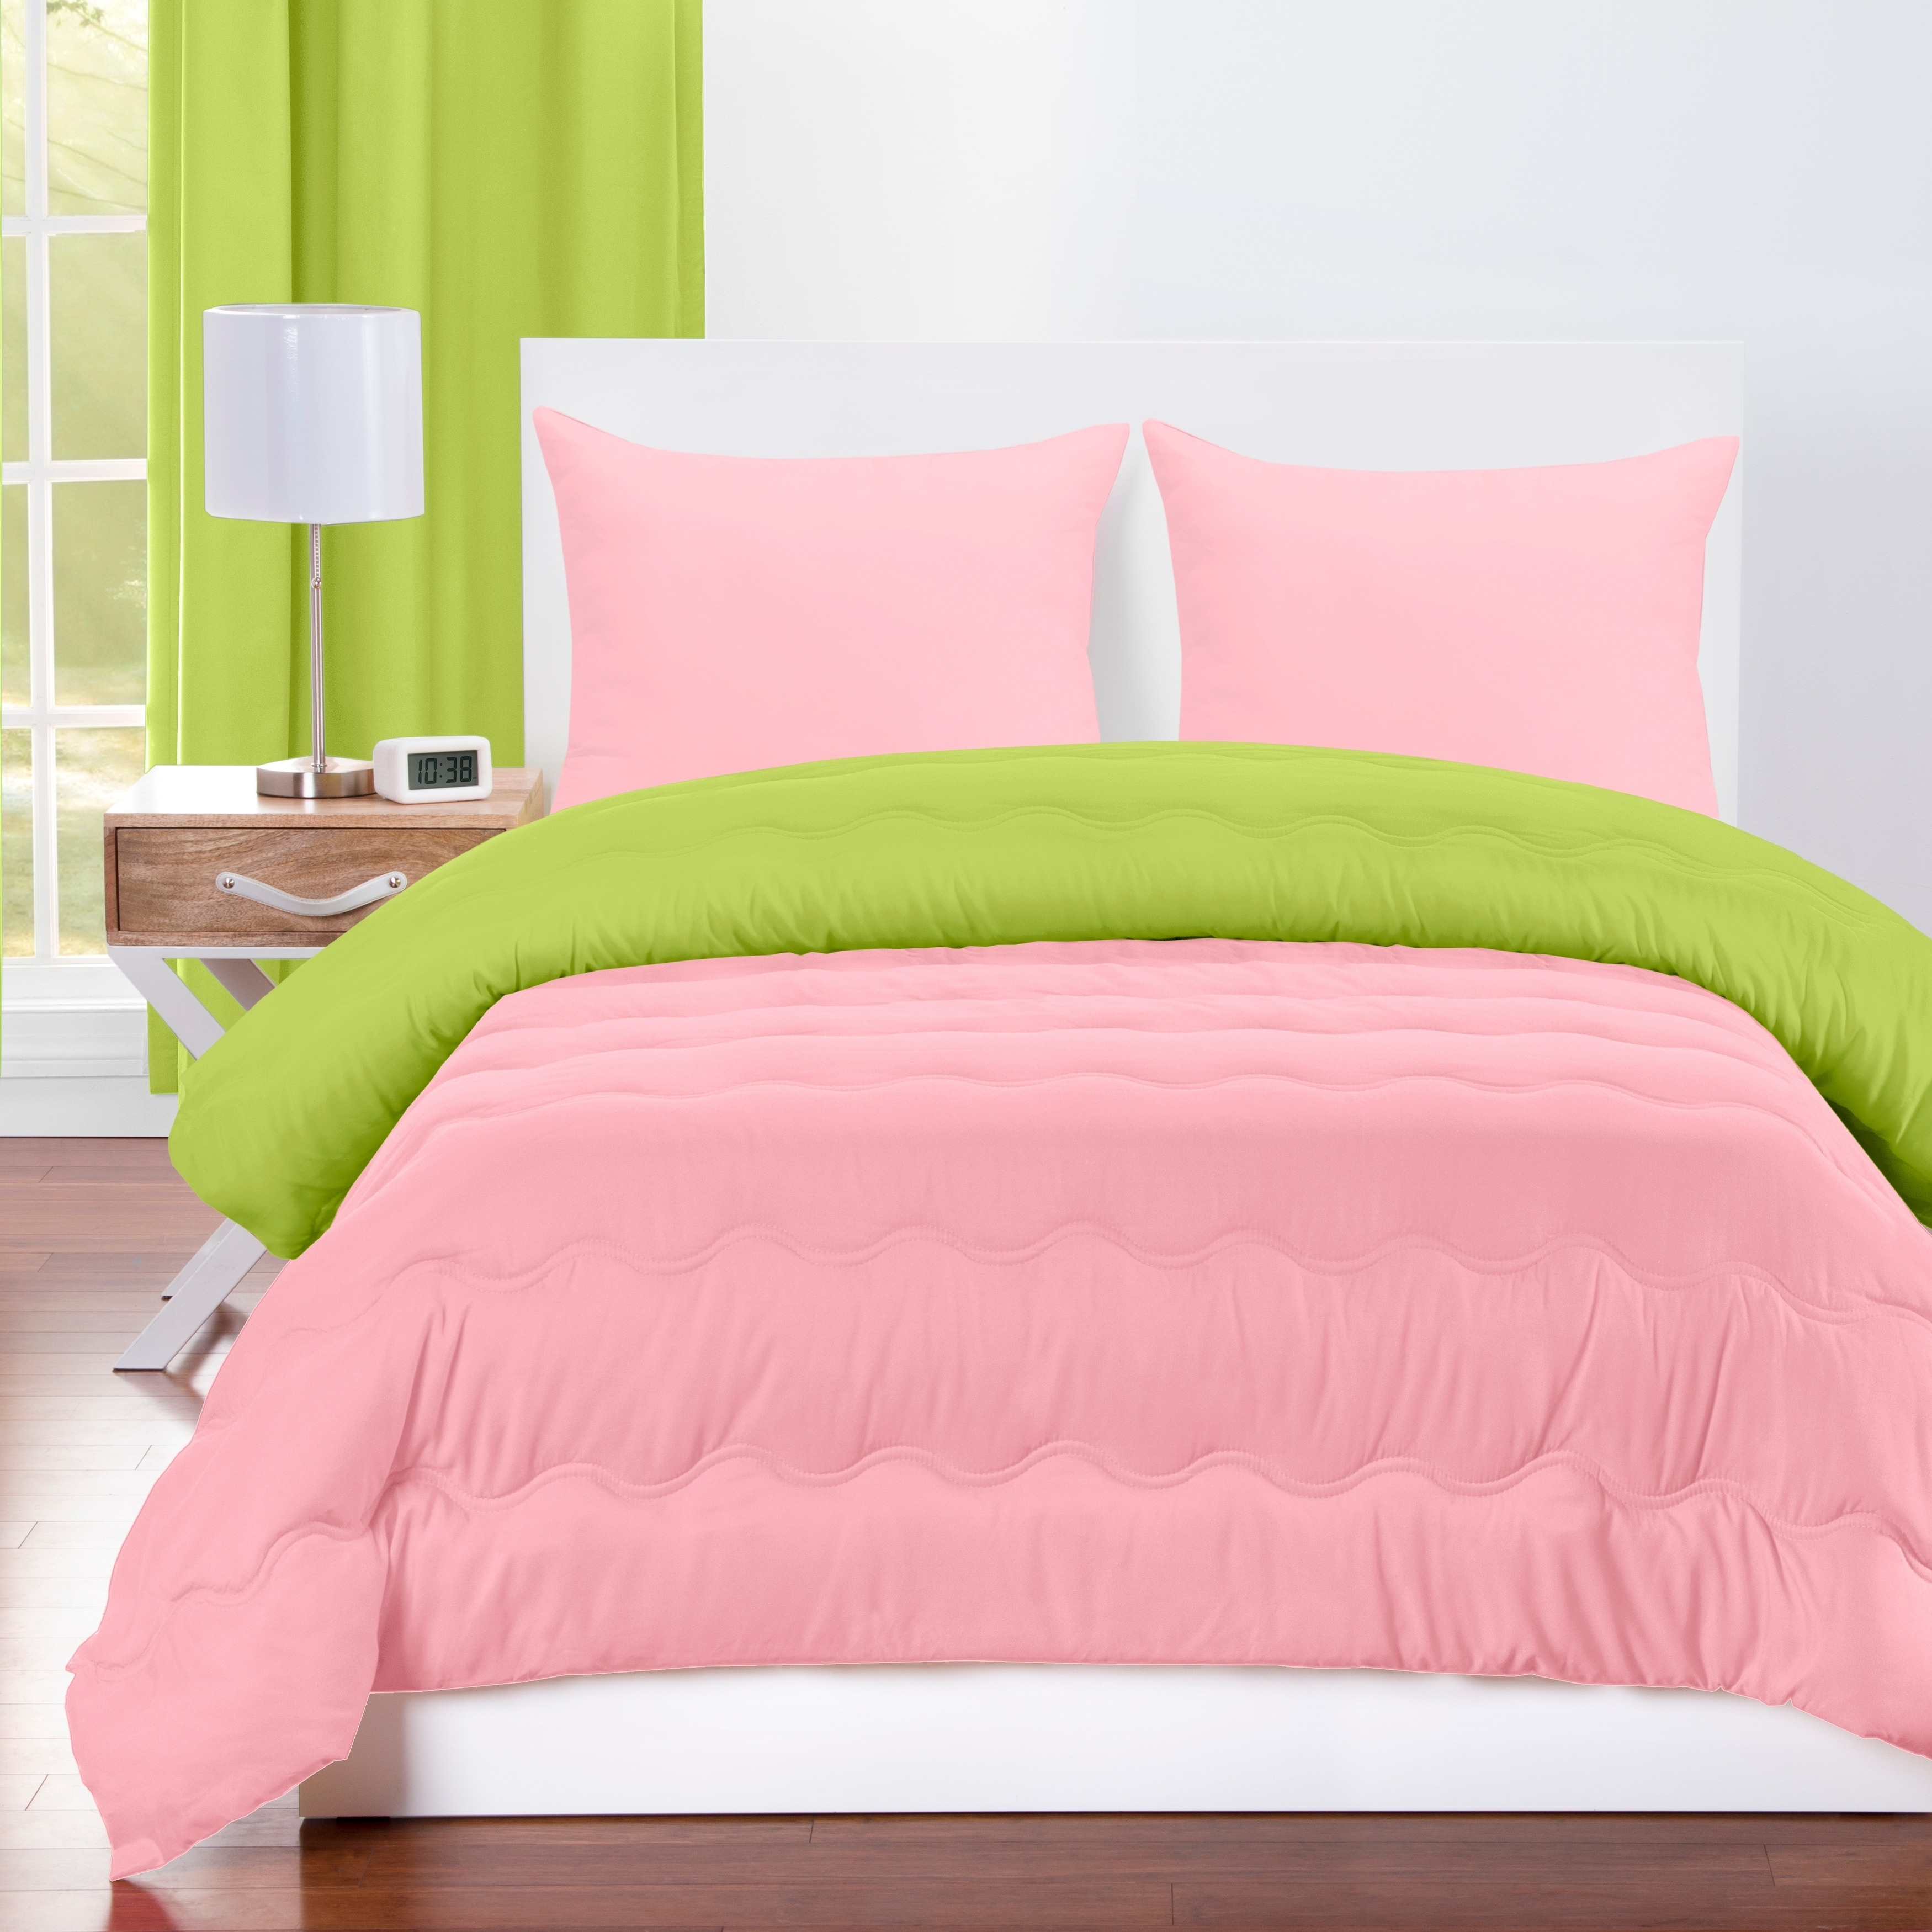 cactus set free pink product overstock bedding green collection comforter size piece bath today designs floral twin girl sweet and watercolor jojo boho shipping